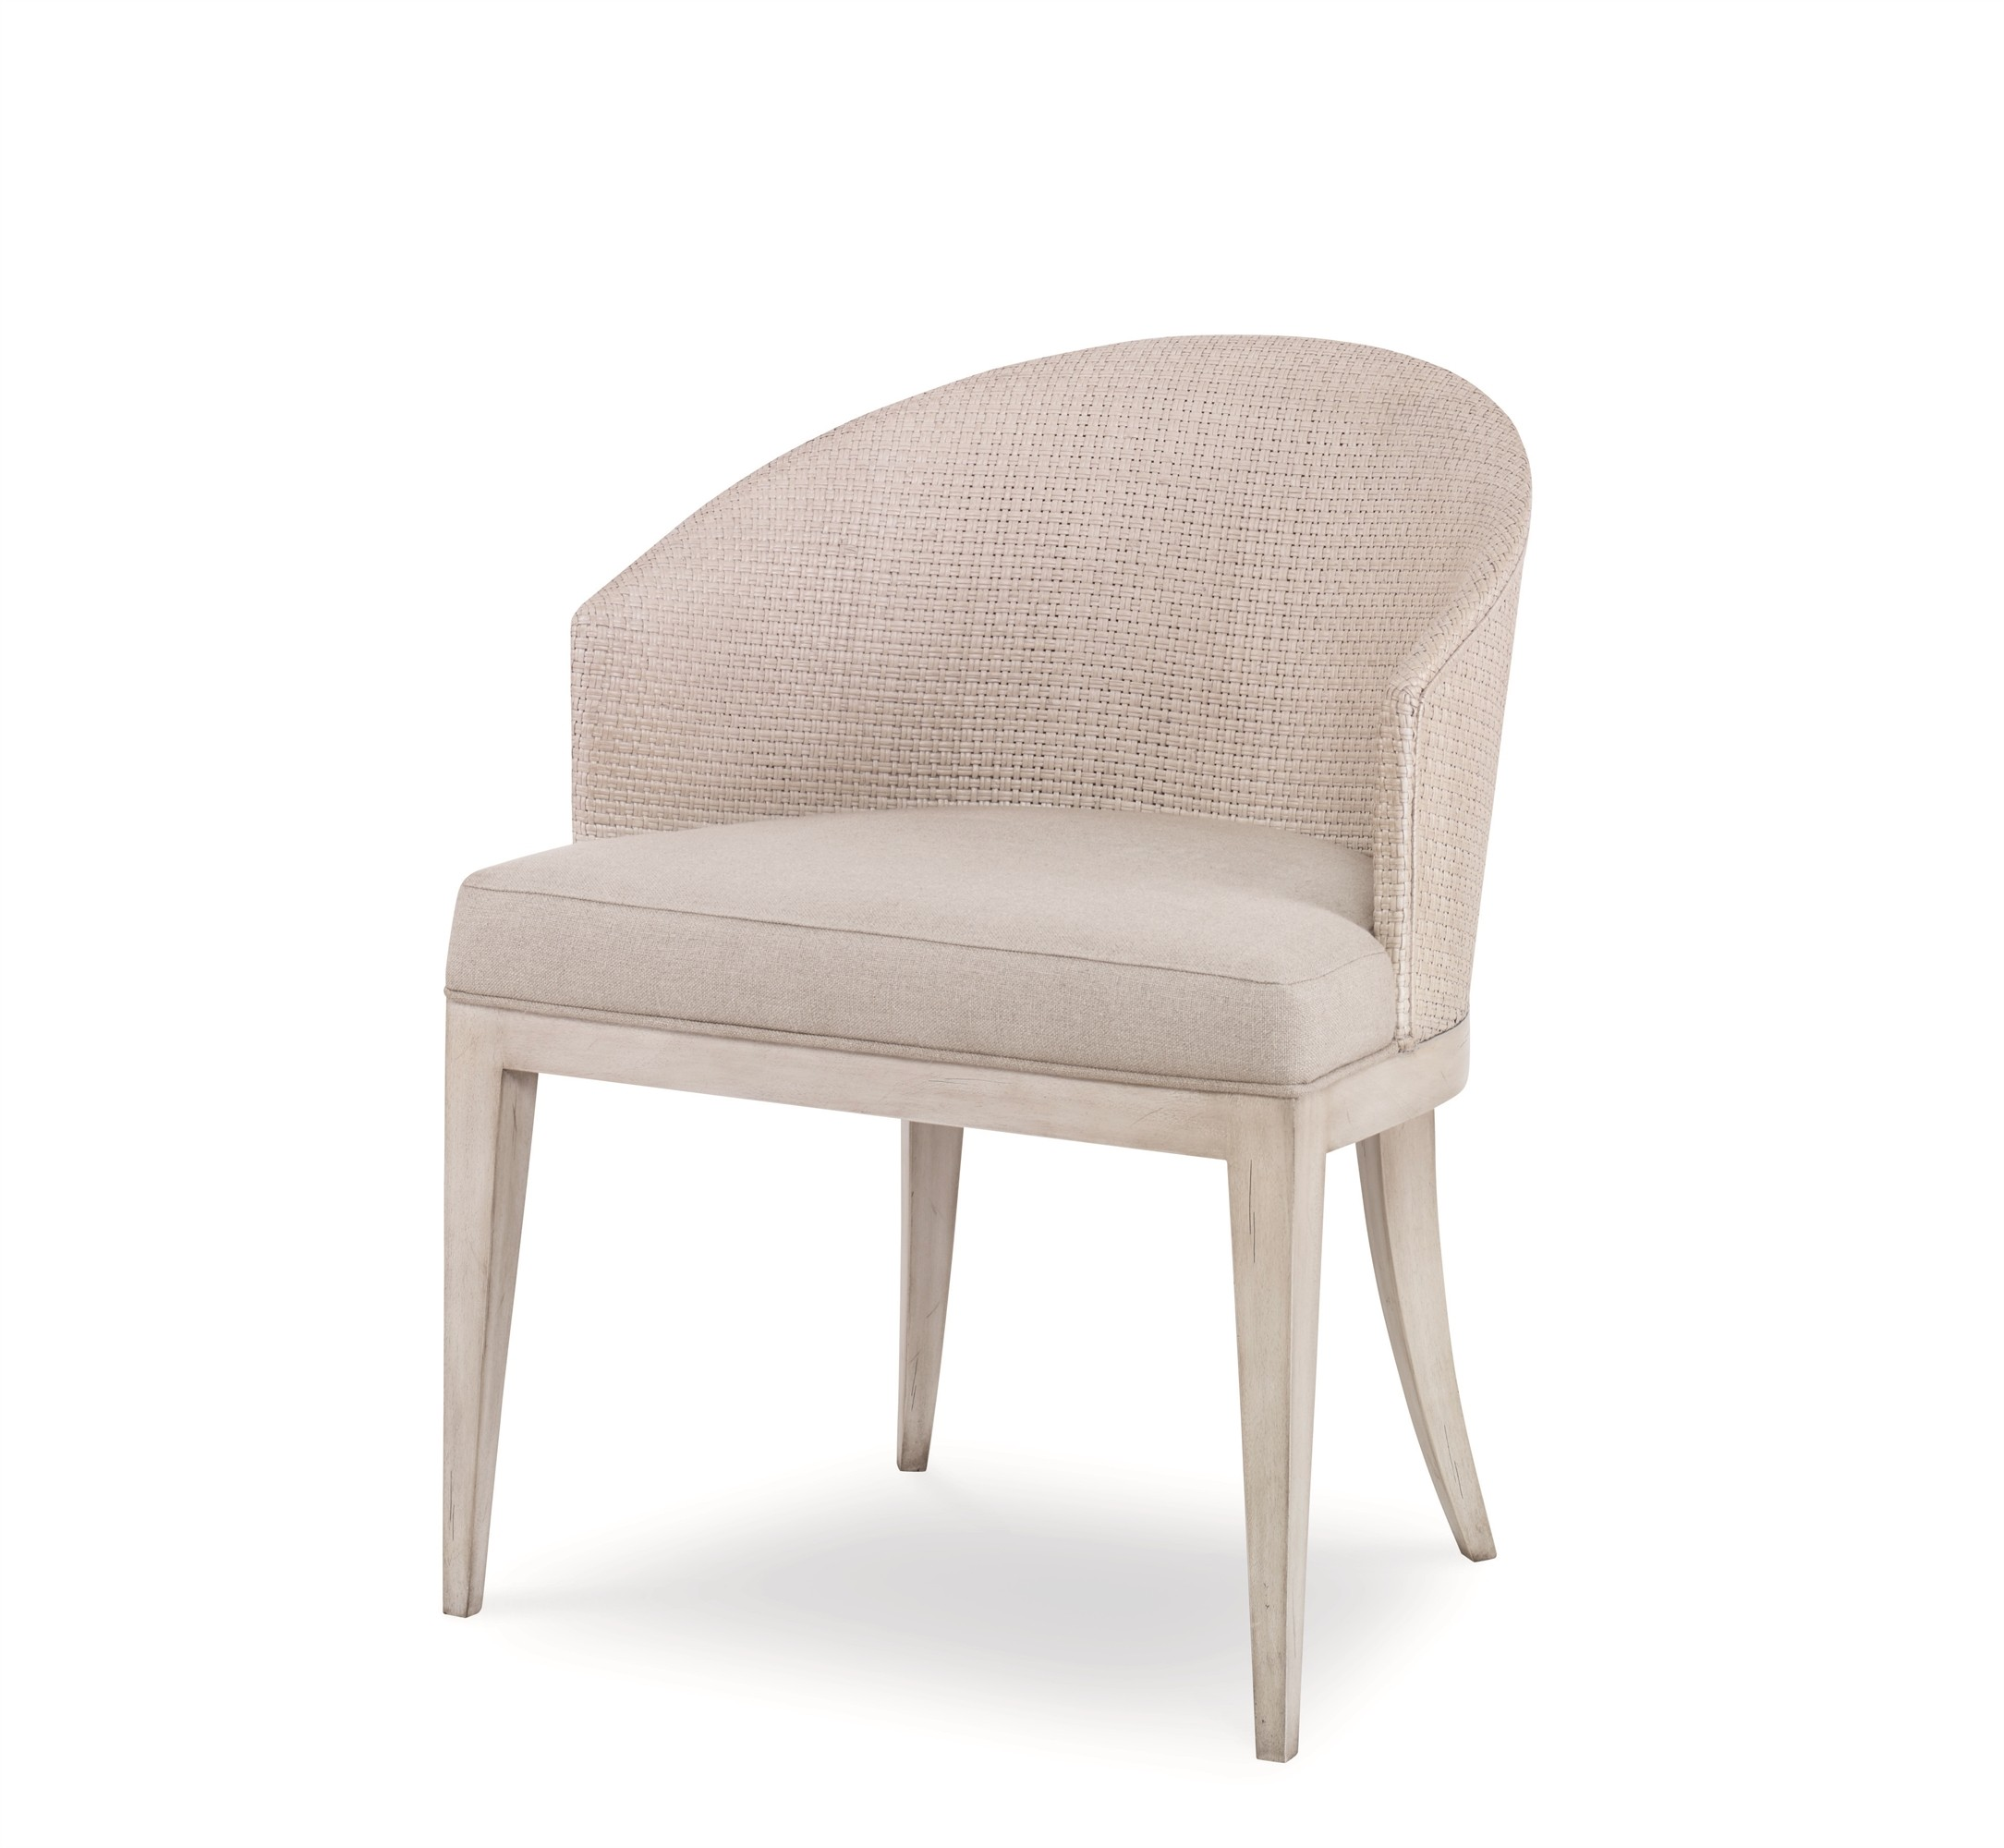 Tybee Chair-Peninsula/Flax (Lw-050-105-07, C105-050-07)